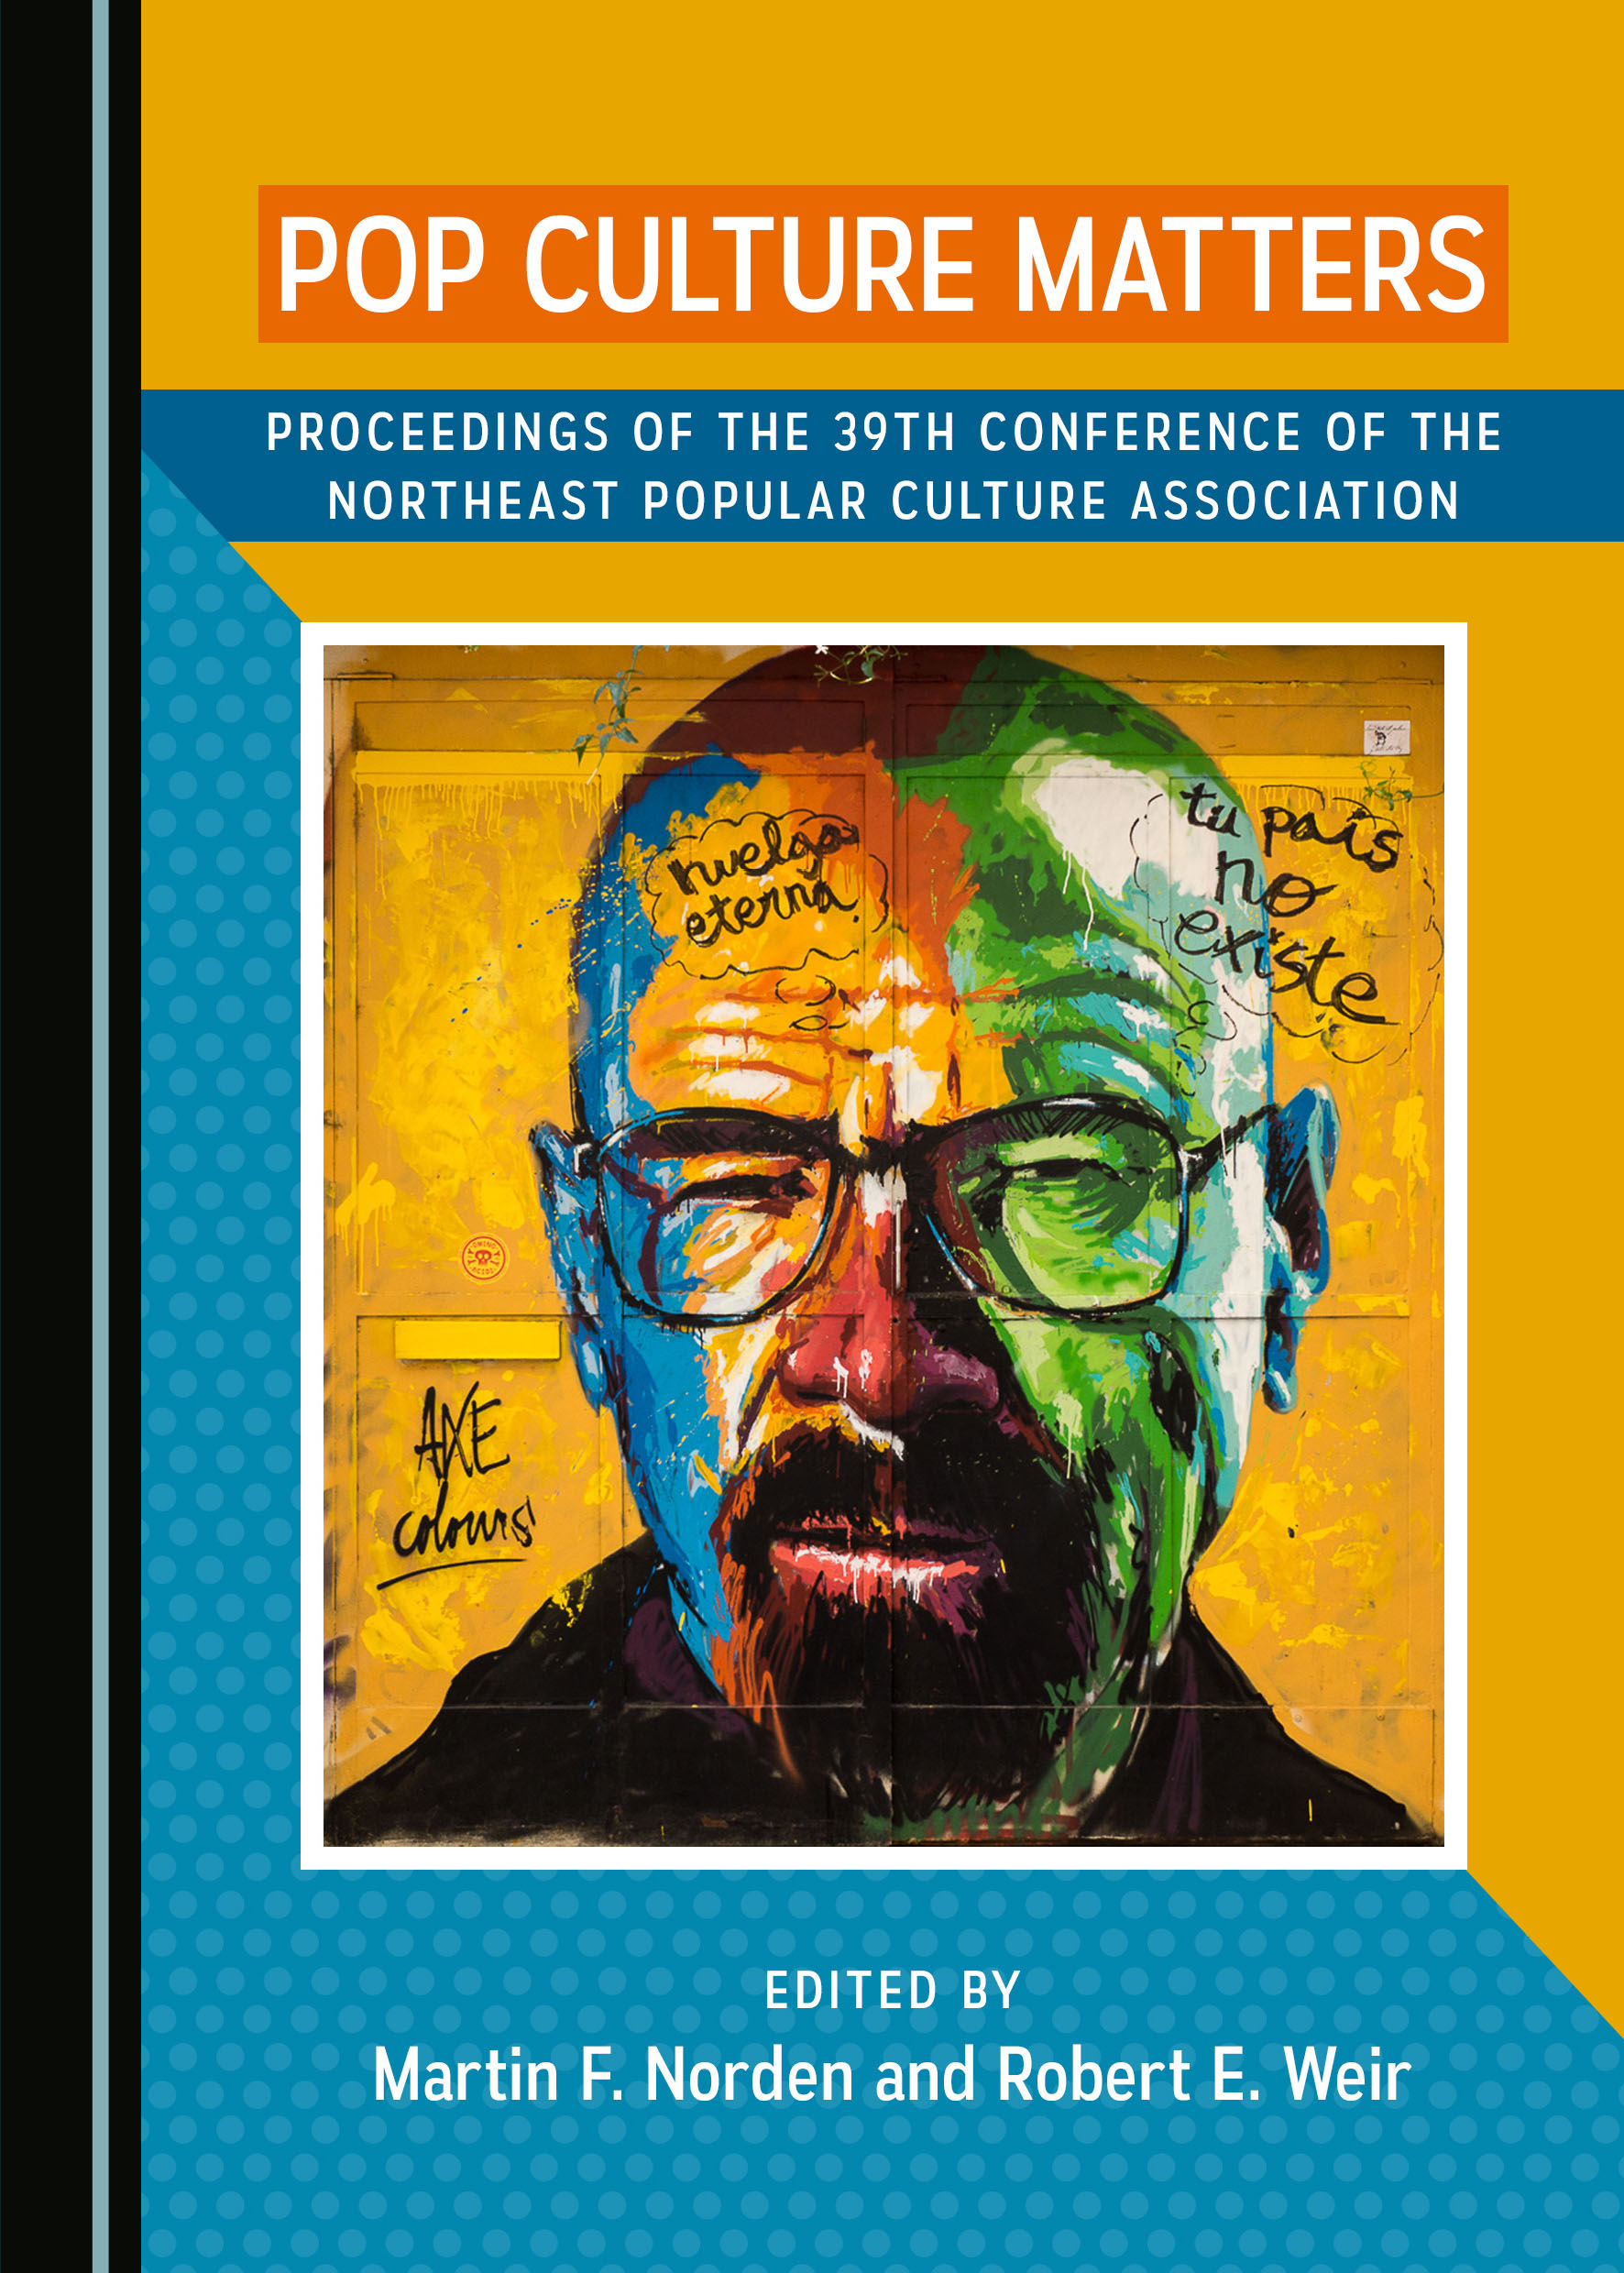 Pop Culture Matters: Proceedings of the 39th Conference of the Northeast Popular Culture Association